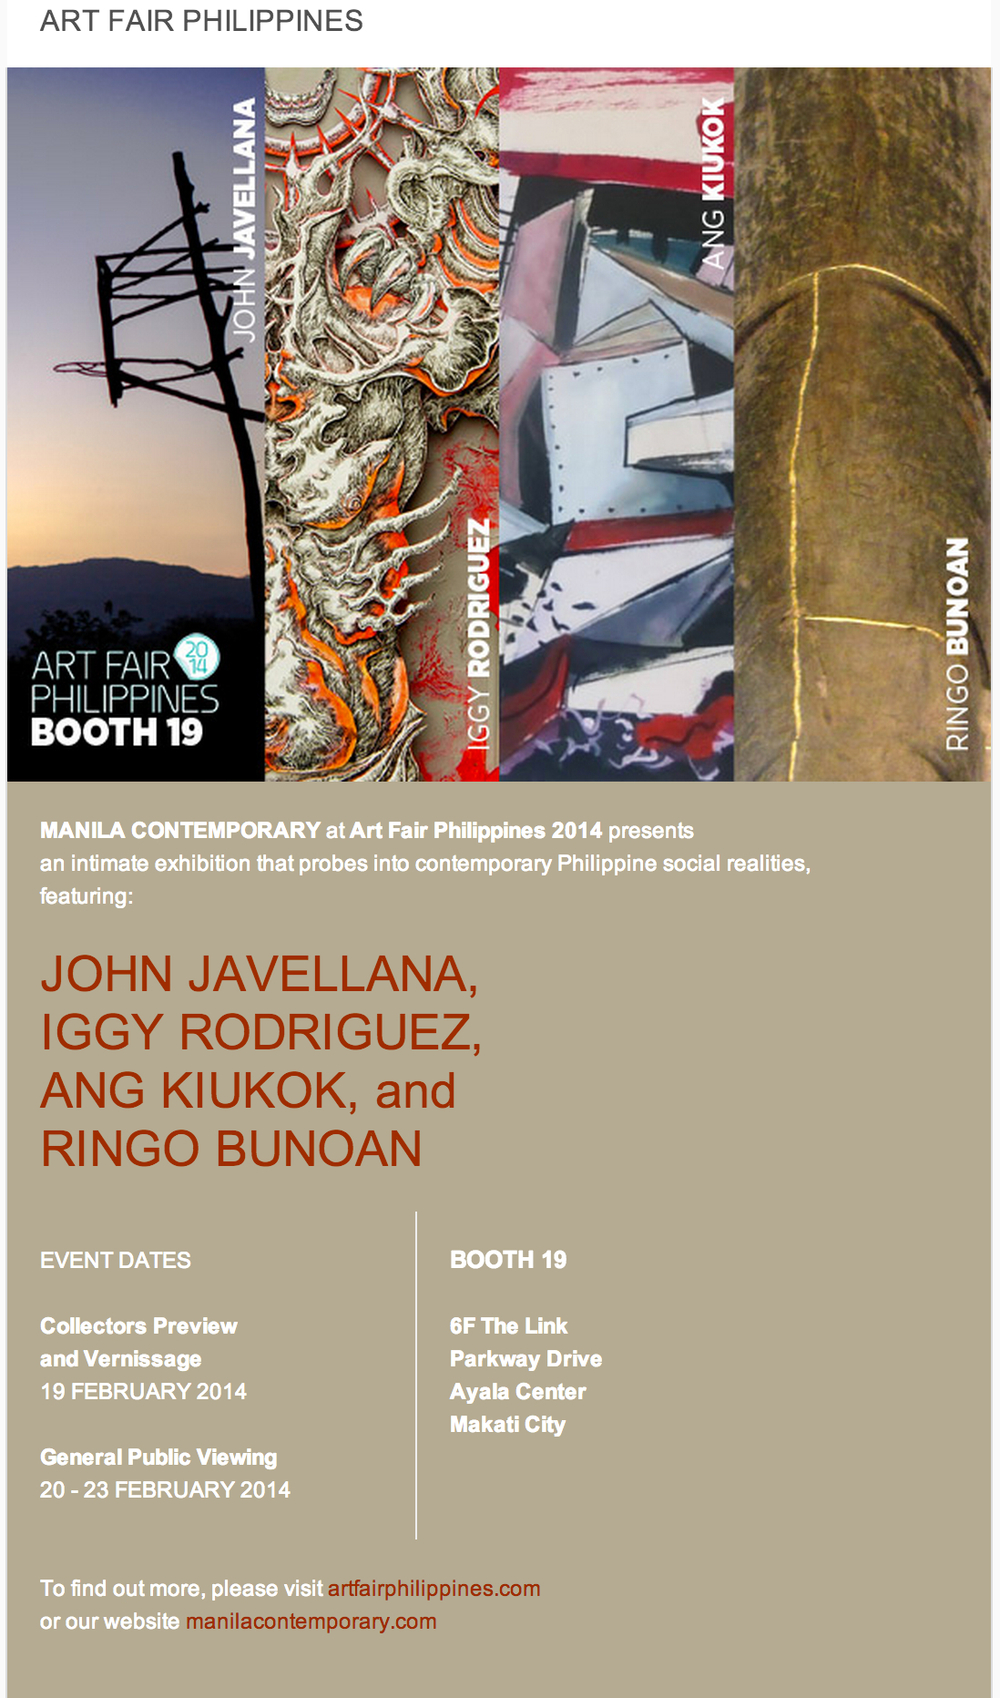 MANILA_CONTEMPORARY_AT_ART_FAIR_PHILIPPINES_2014__Booth_19_.jpg